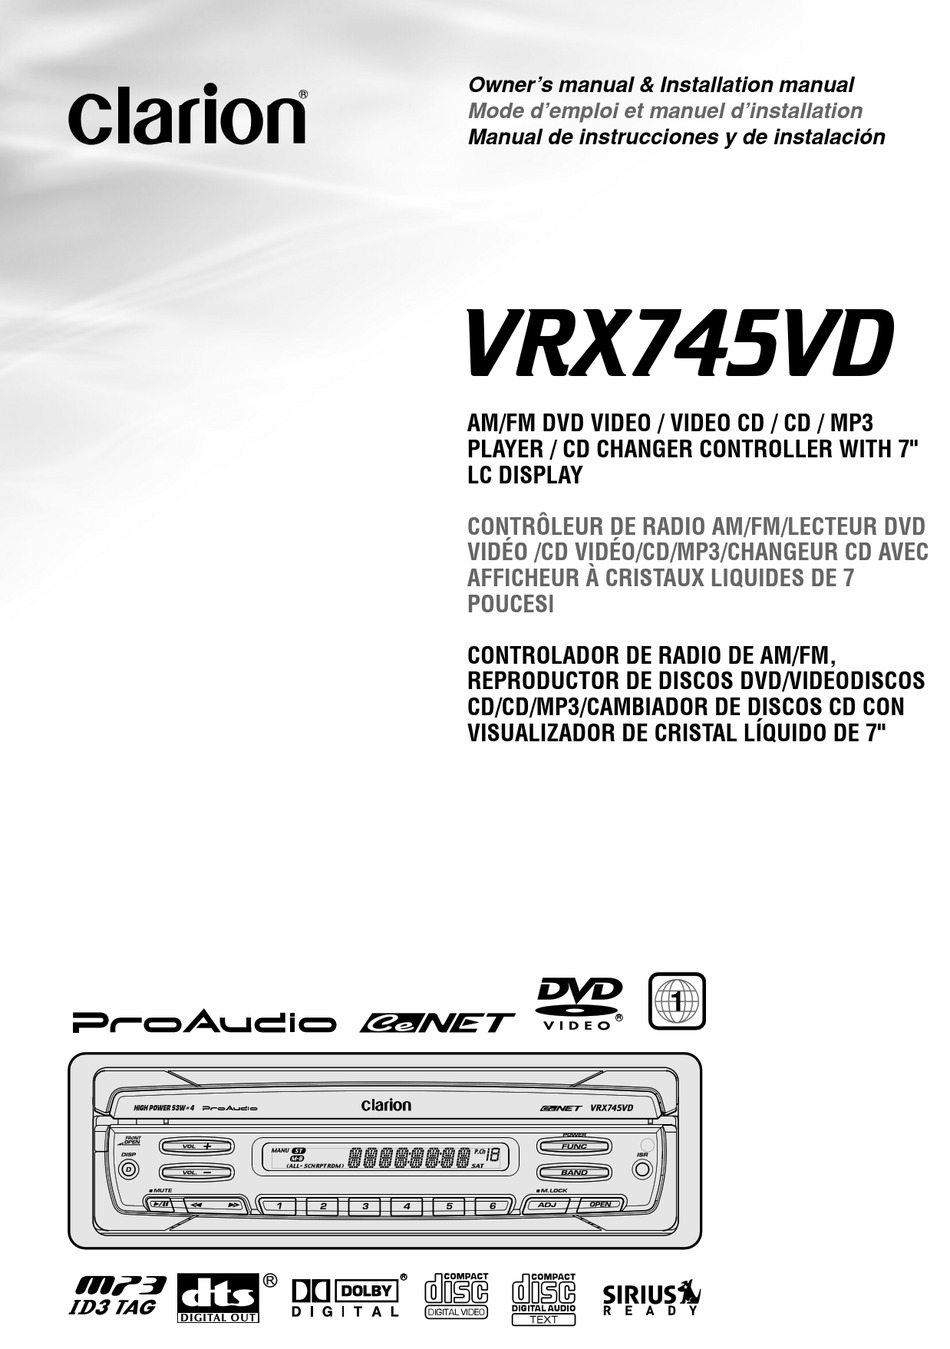 Clarion Vrx745vd Owner S Manual